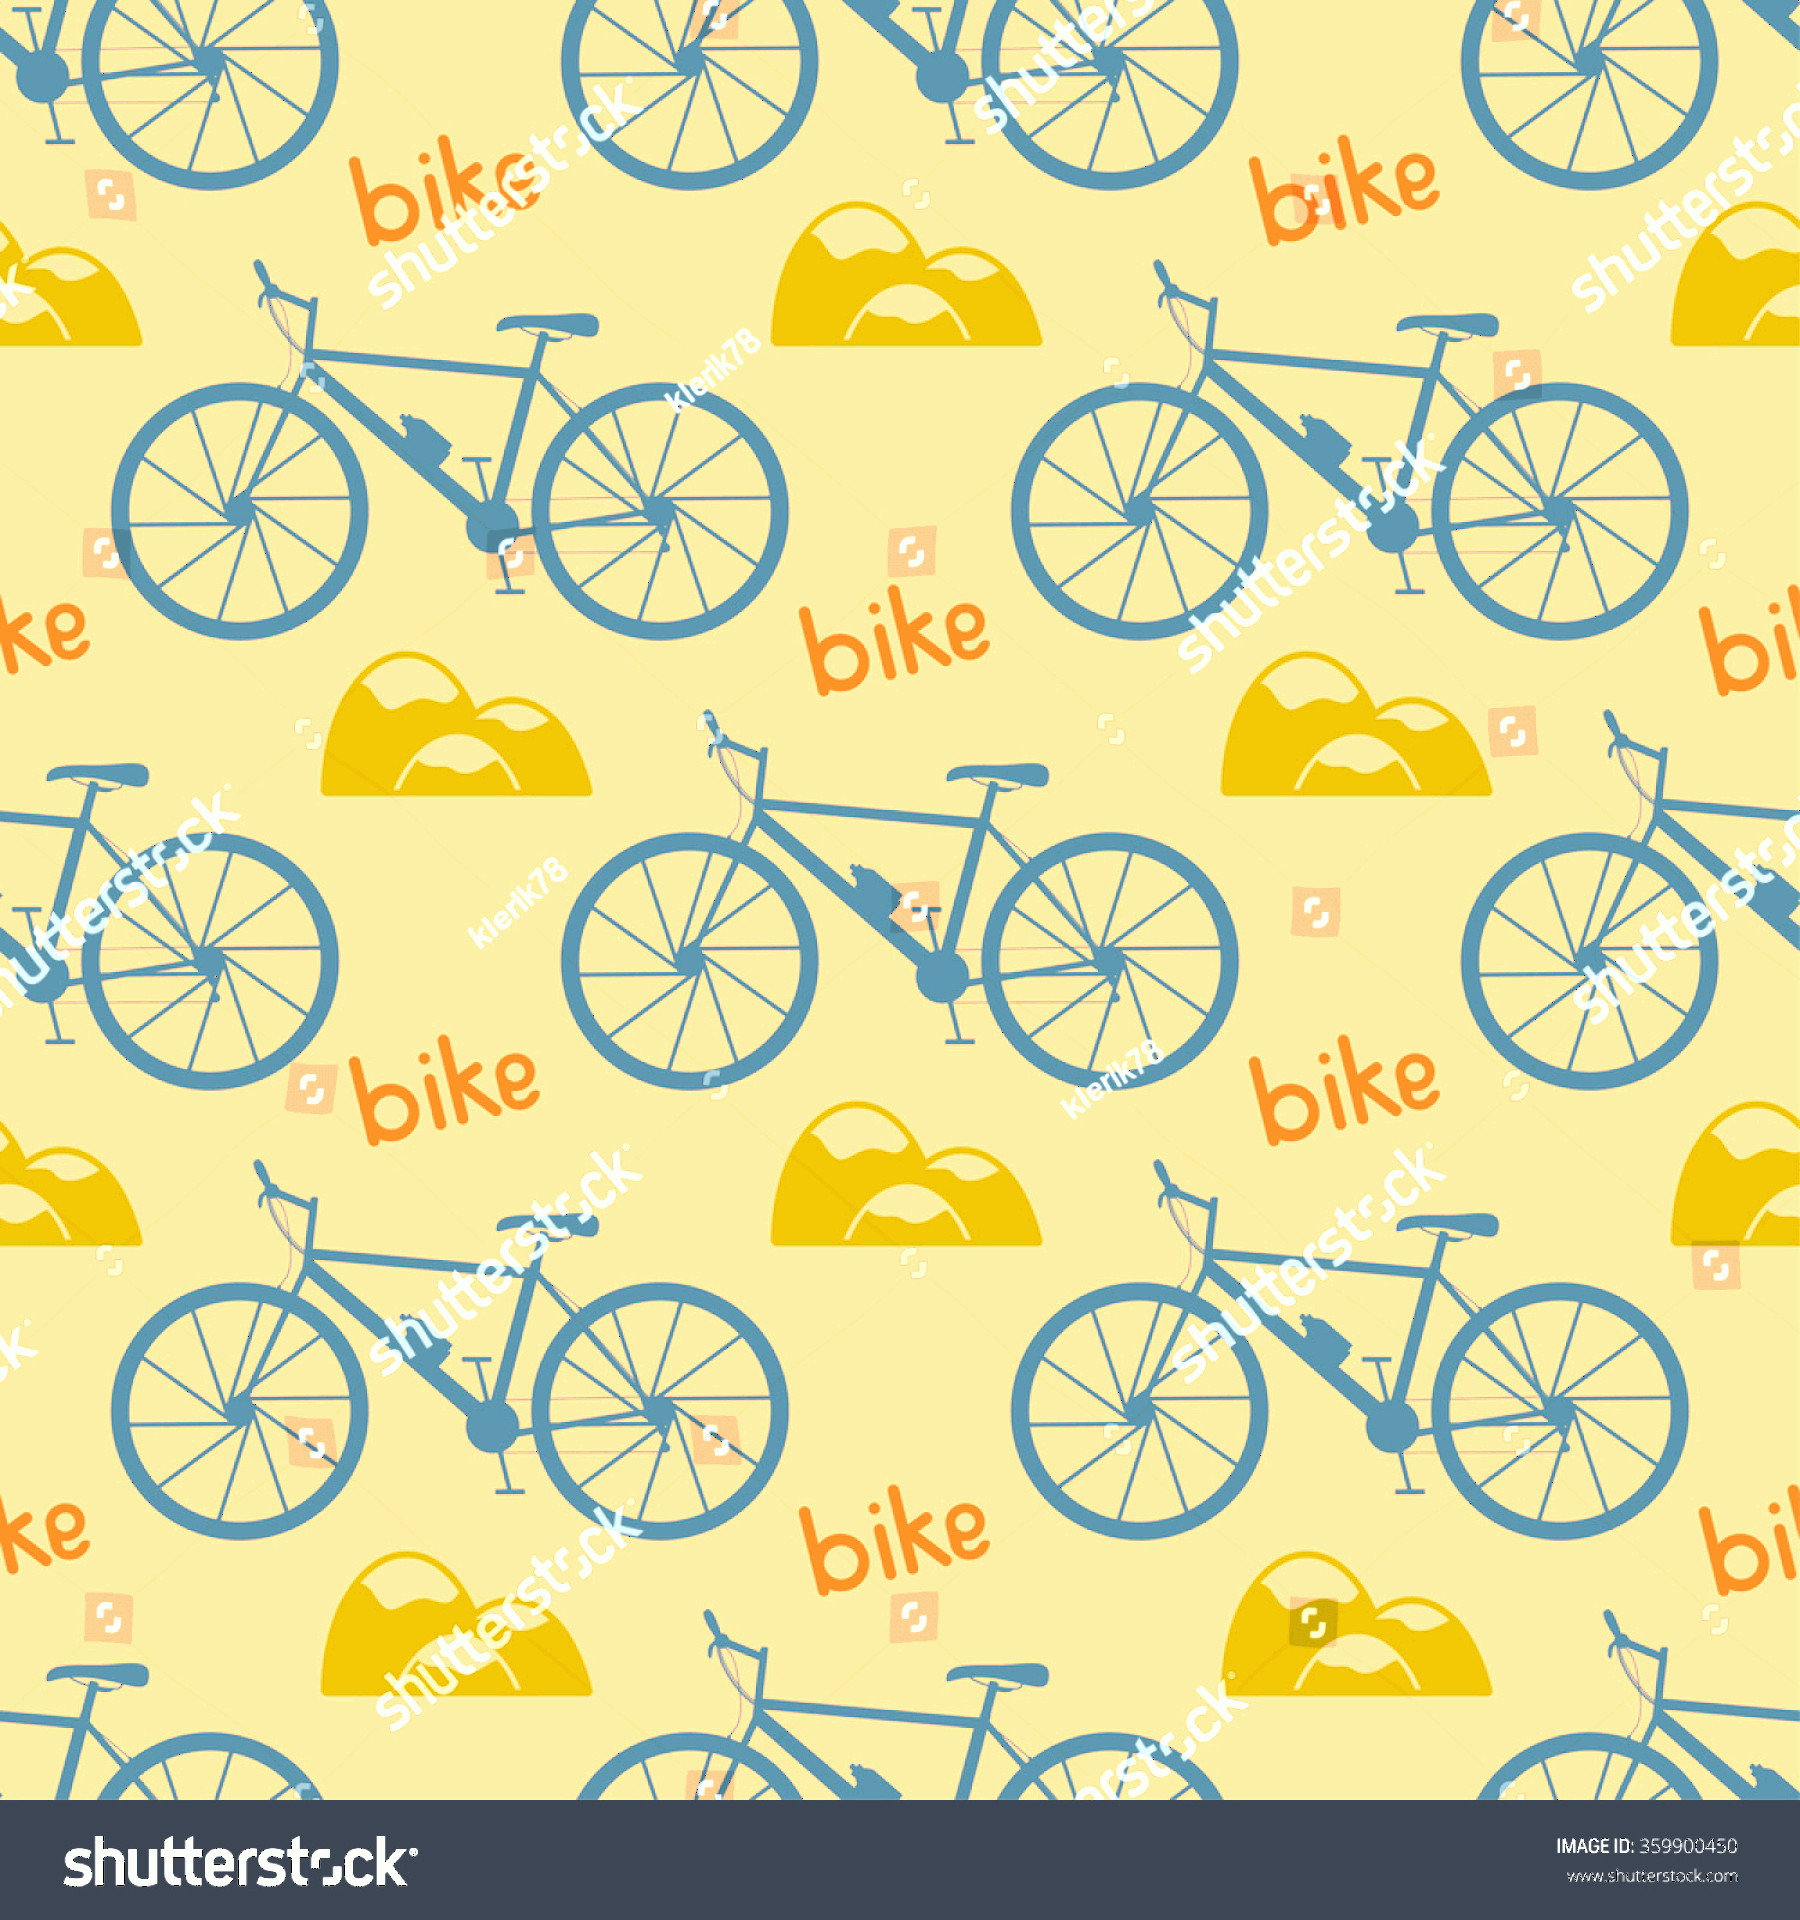 Bicycle Vector Artwork Of Patterns: Seamless Bicycle Pattern Mountain Bike Vector